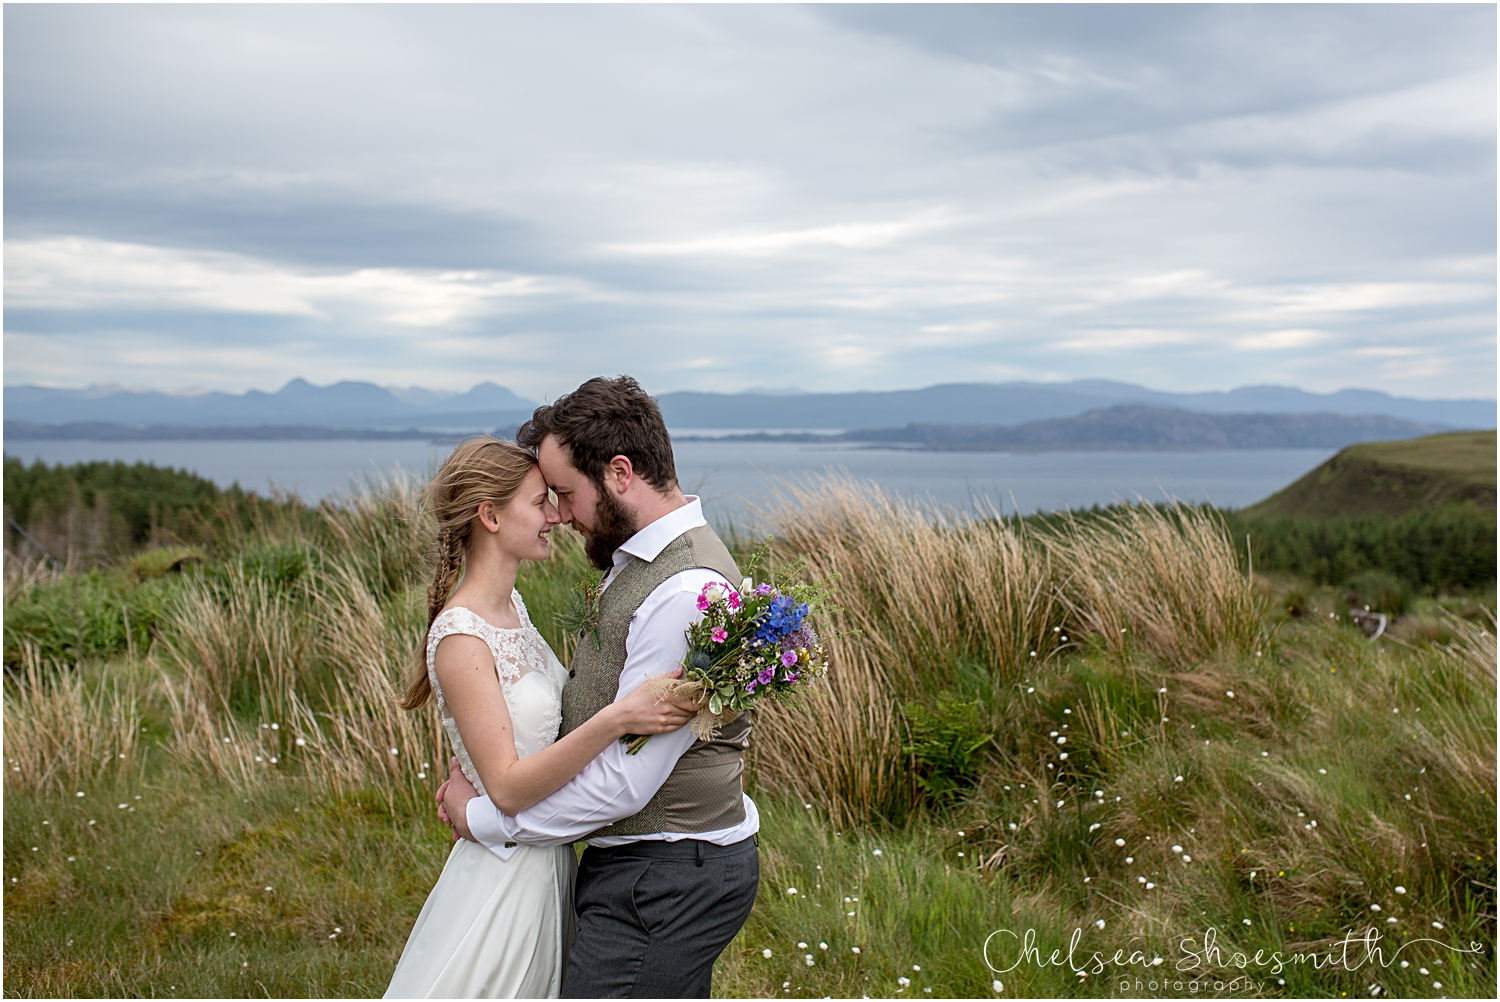 (8 of 20)Lindsay & Jacob Isle of Skye Elopement - Chelsea Shoesmith Photography_